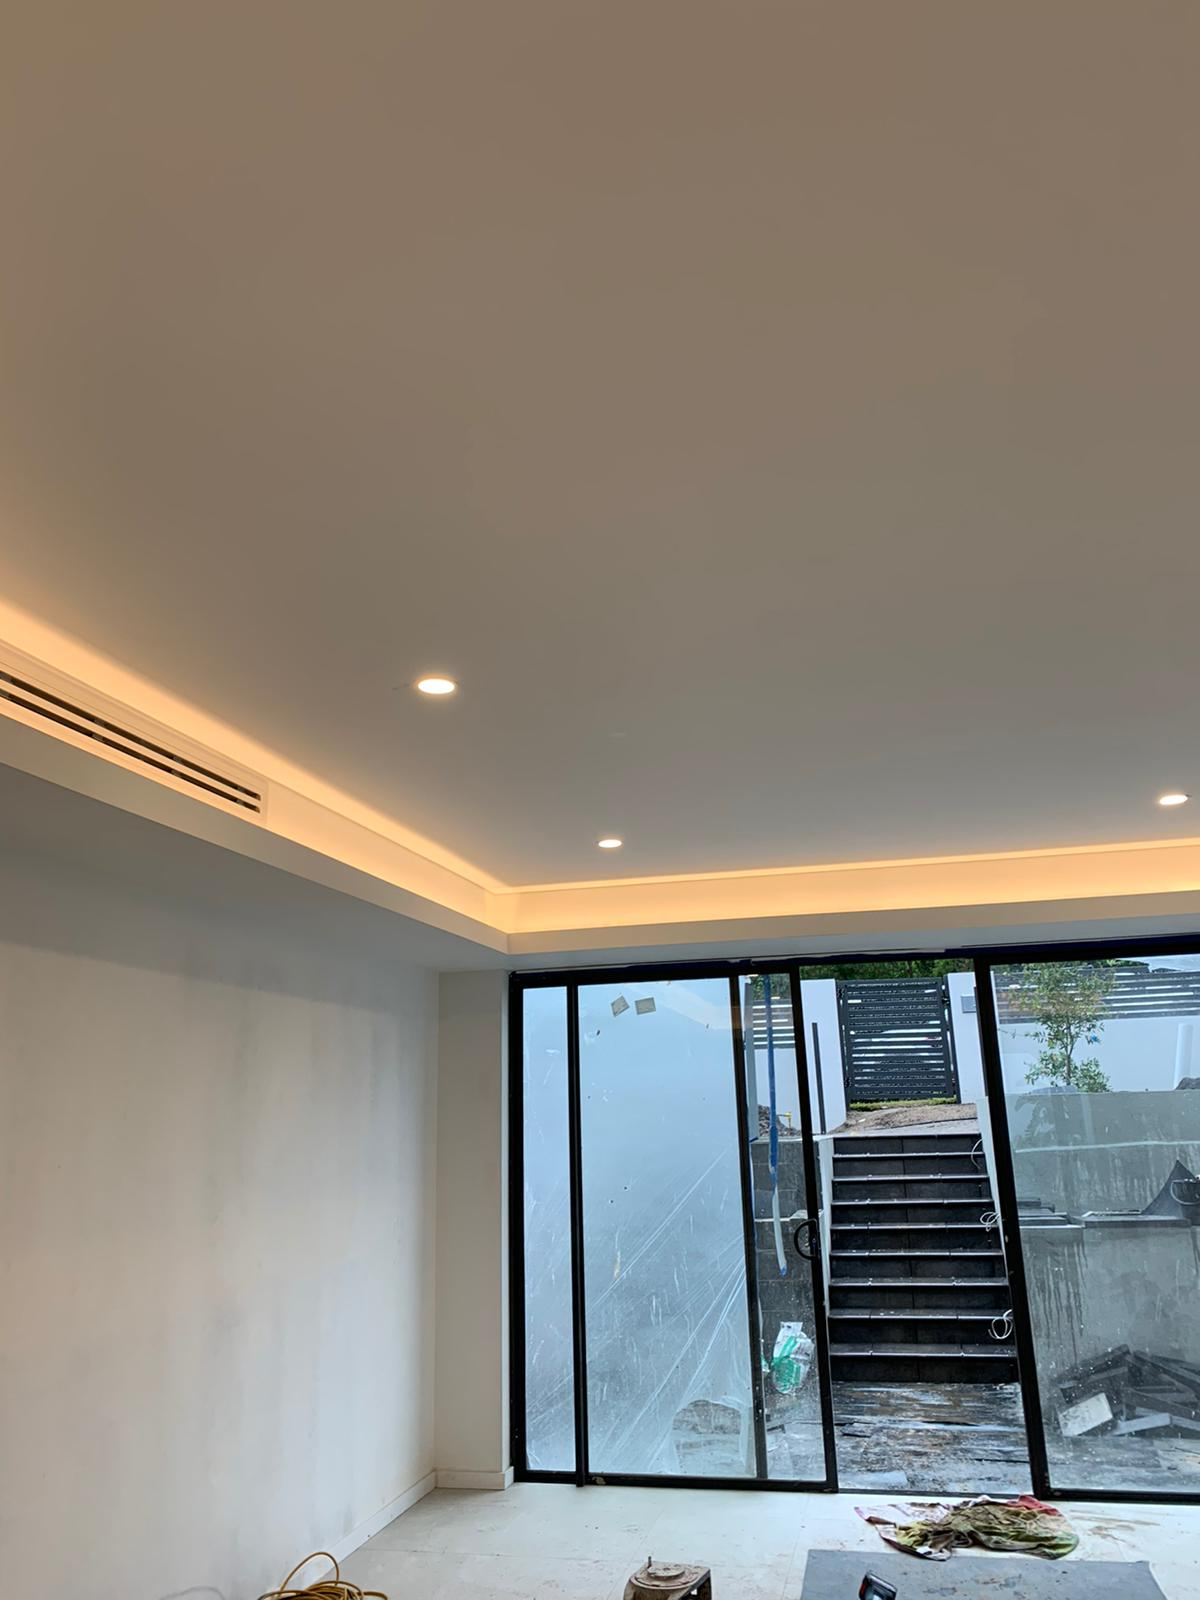 LED Strip lighting ydney justflow electrical installing recessed ceiling led lights for new home